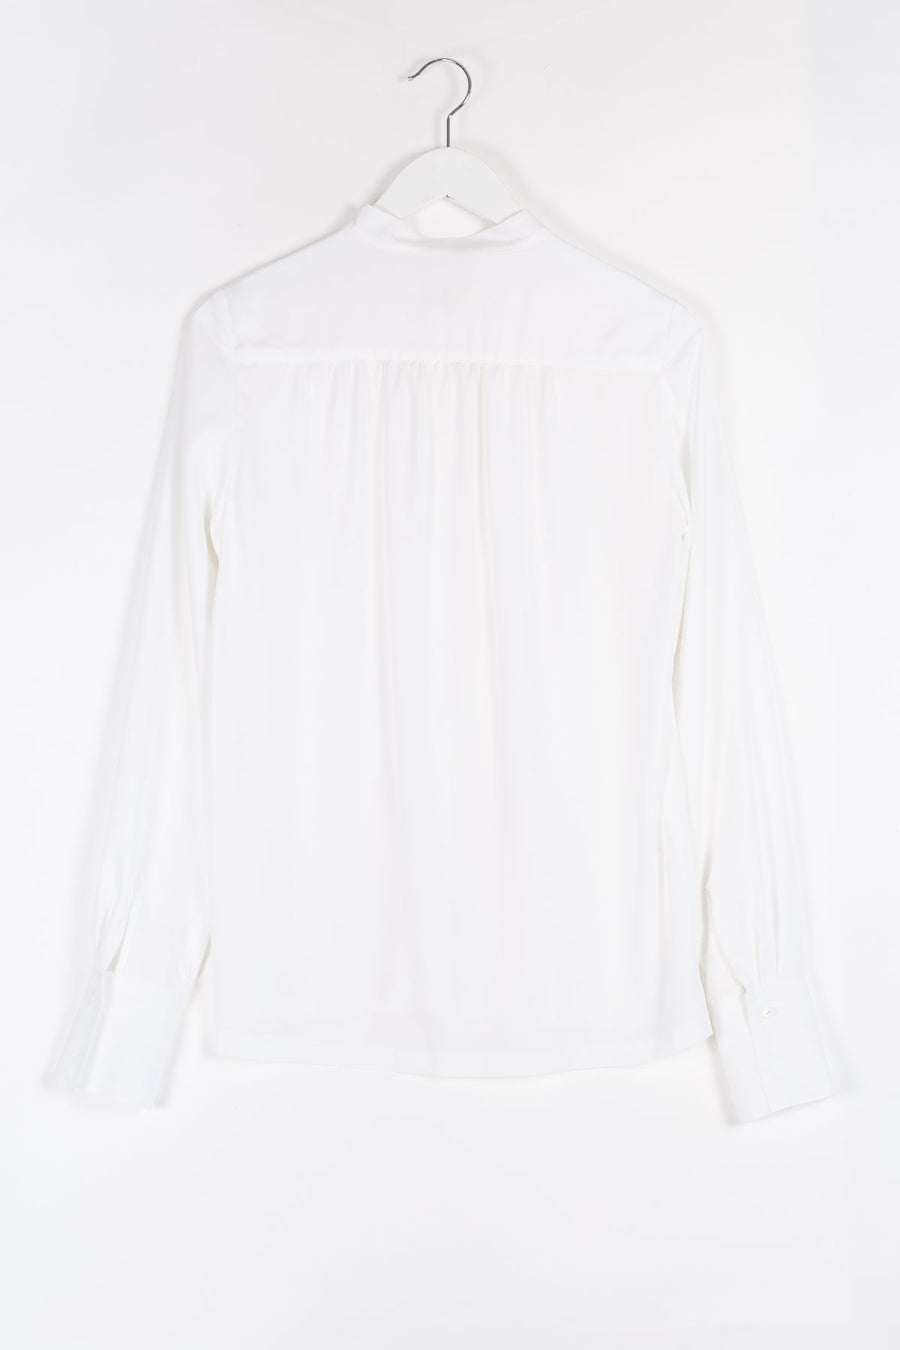 GAMMY Light Polyester Blouse- White